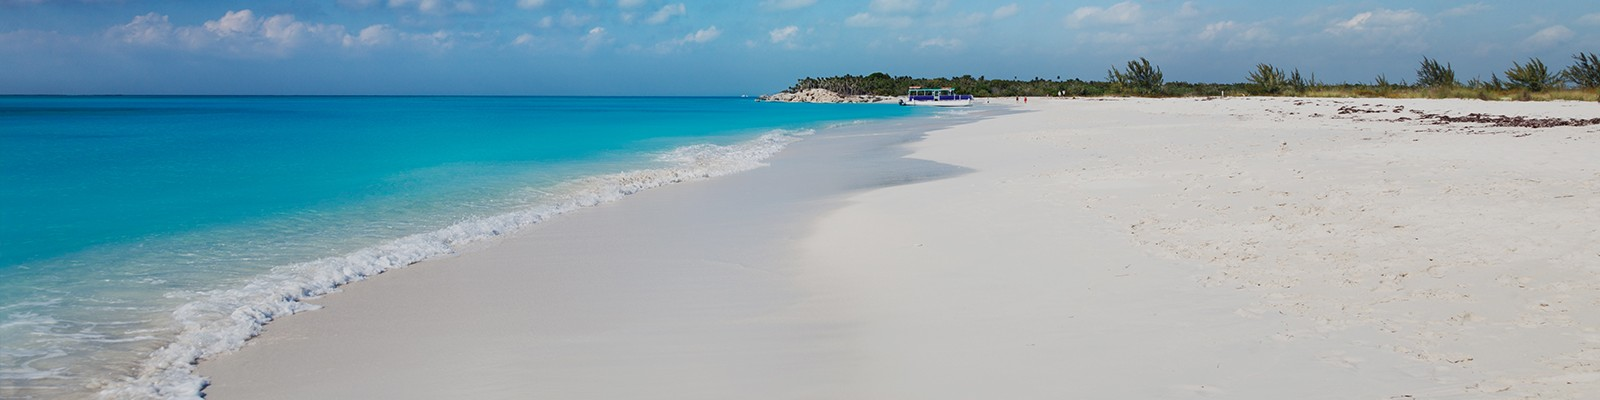 turks & caicos luxury holidays header